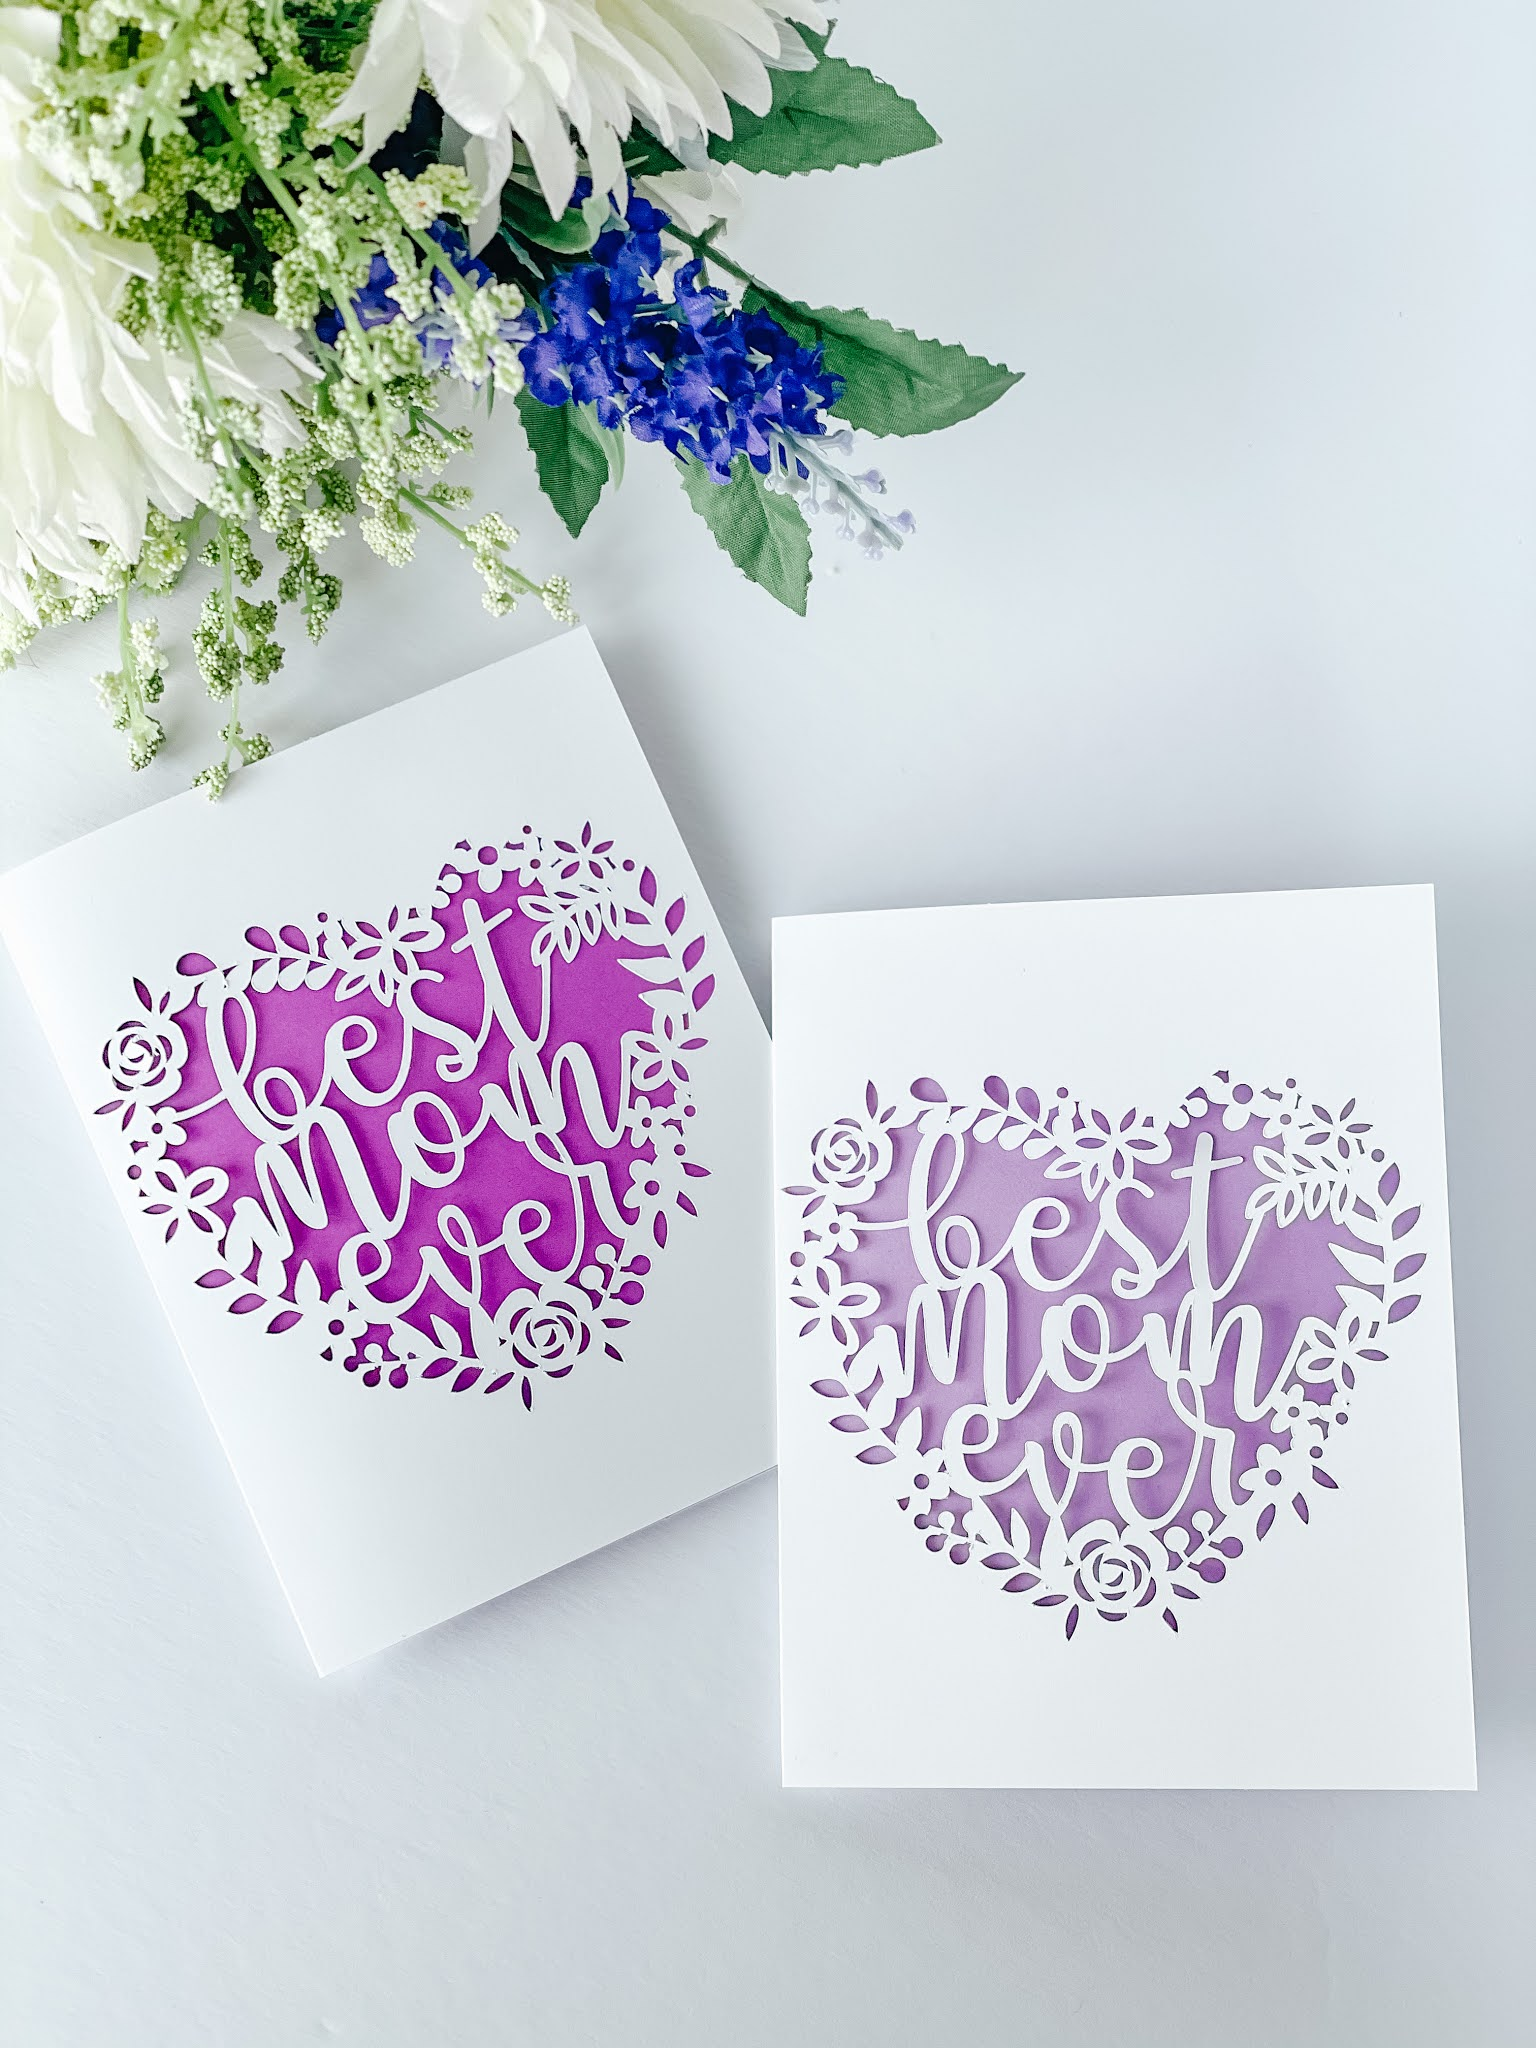 Best Mom Ever Paper Cut Mother's Day Card